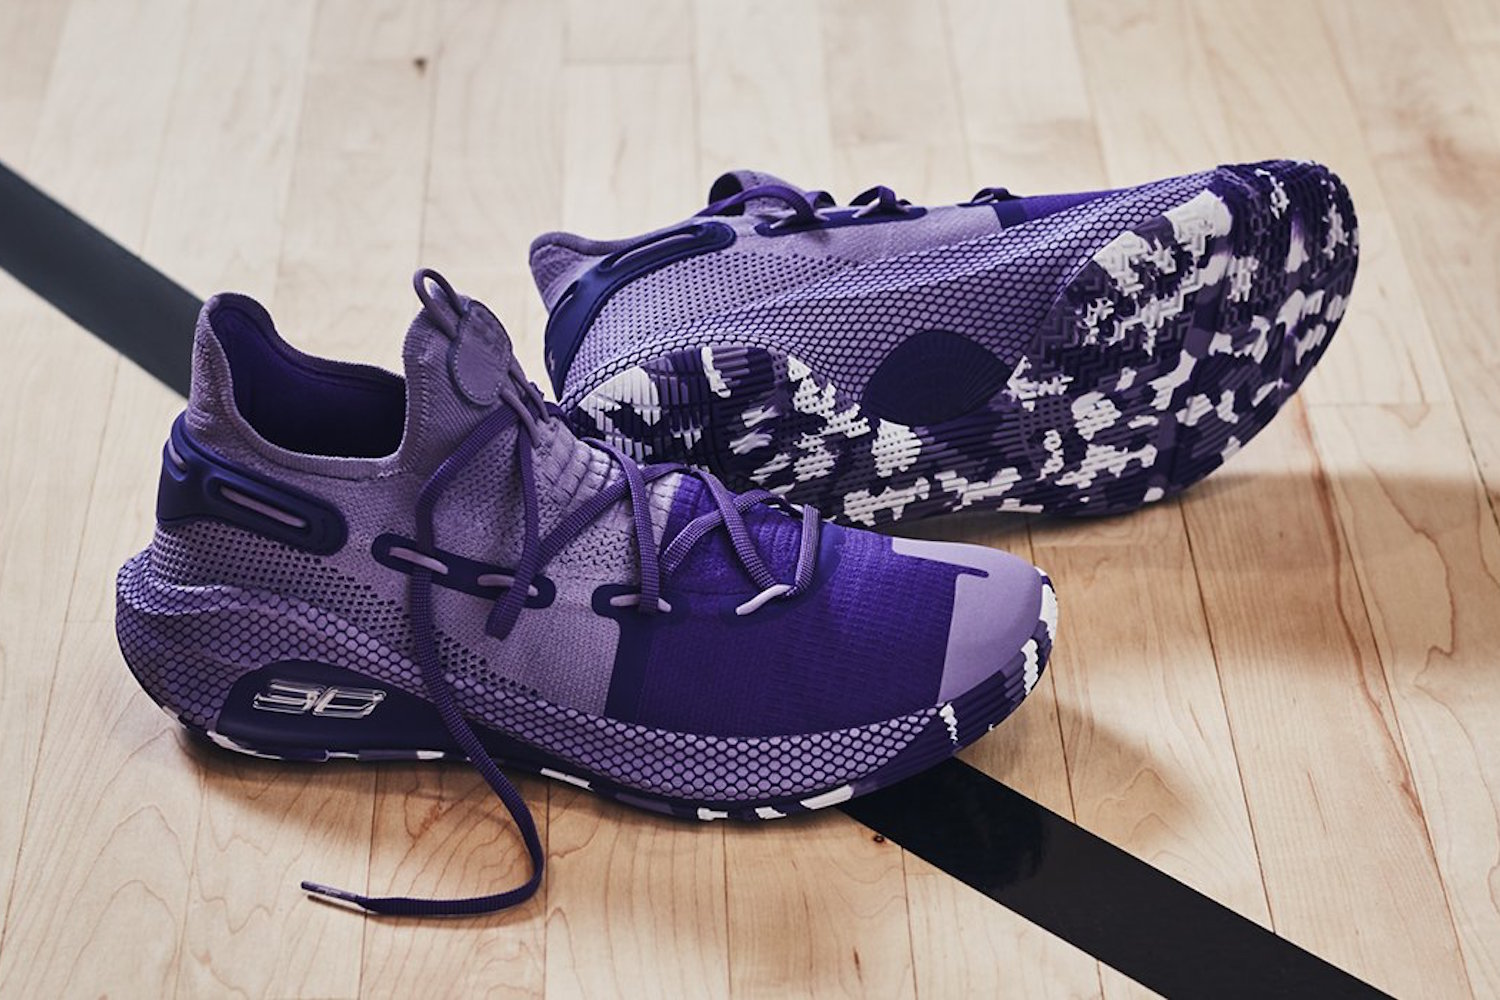 0b30ad0da4f8 Steph Curry s New Sneaker Was Co-Designed by a 9-Year-Old Girl   Available  in Women s Sizes